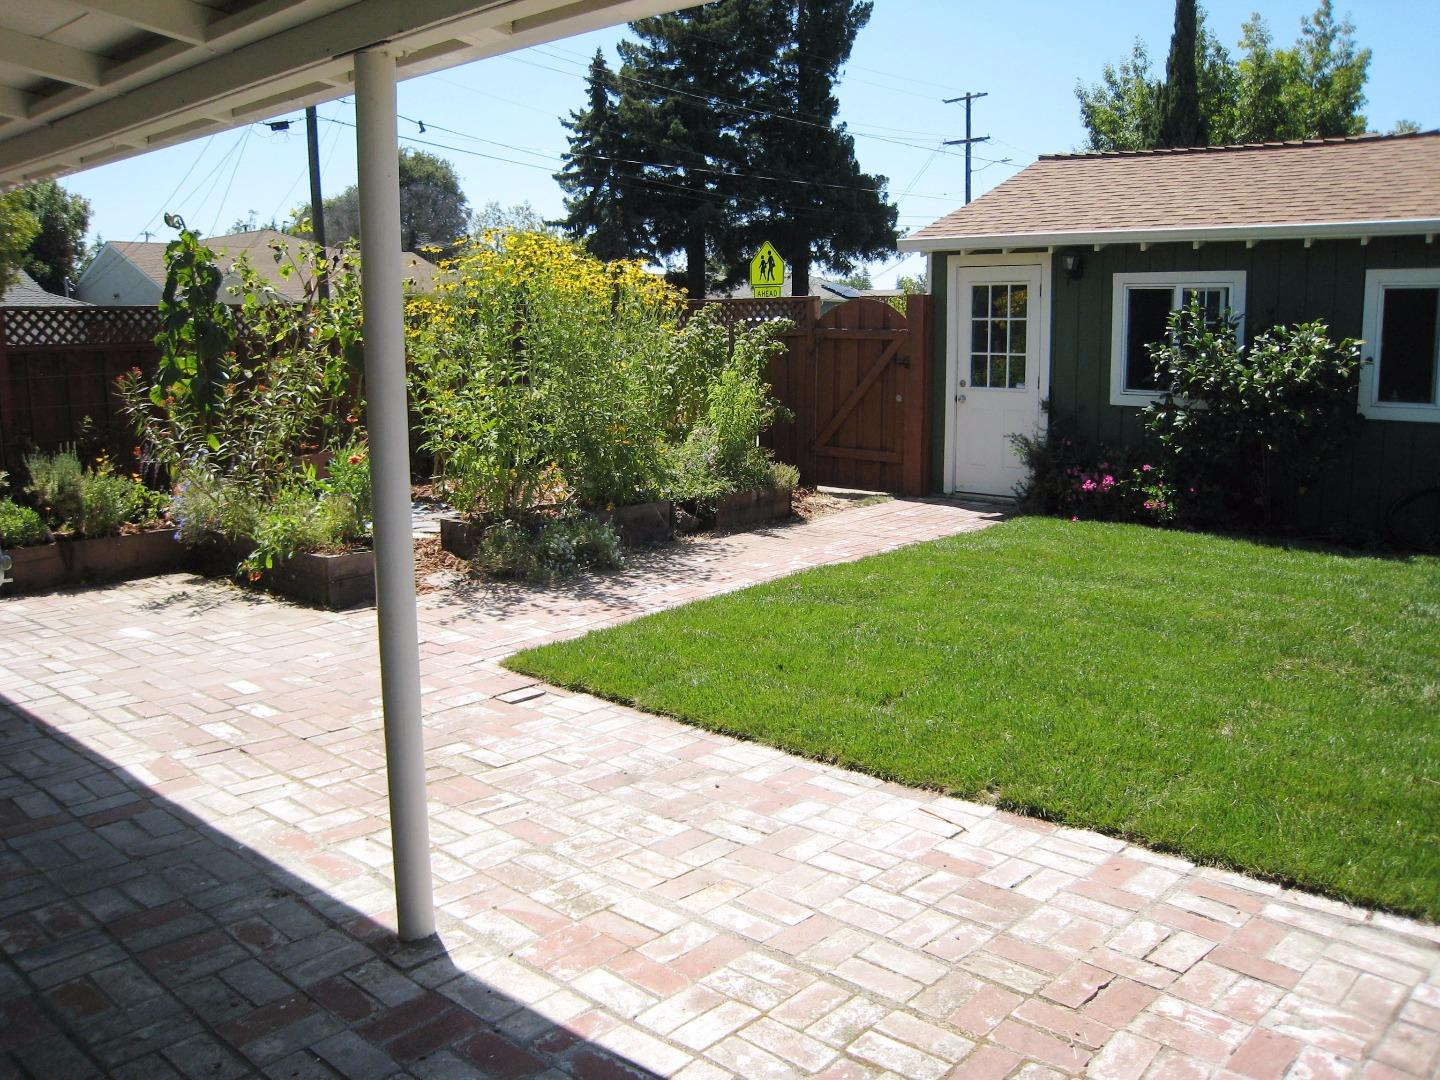 Additional photo for property listing at 498 Vine Avenue  Sunnyvale, カリフォルニア 94086 アメリカ合衆国